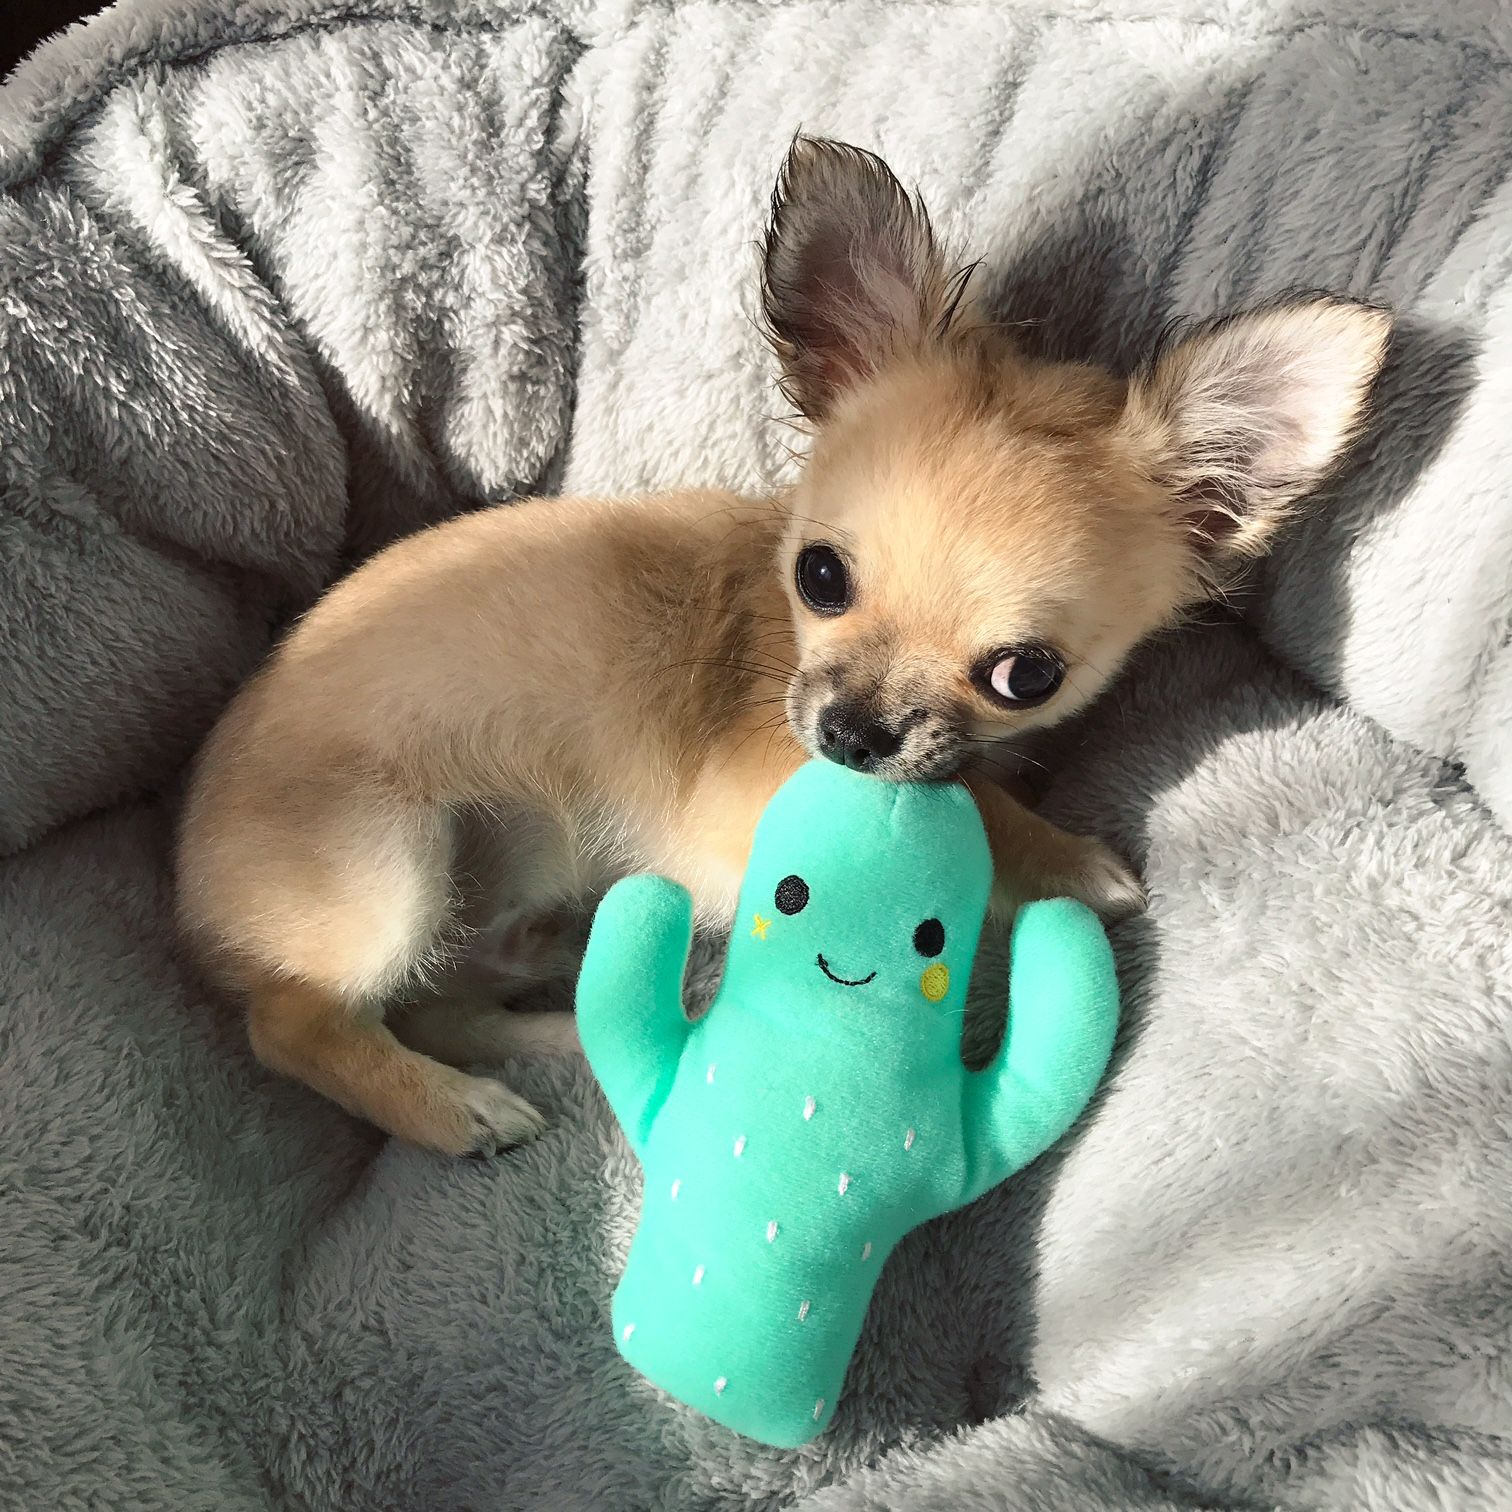 Lately Perth Beauty Blogger Katie Rebekah Puppy Chihuahua